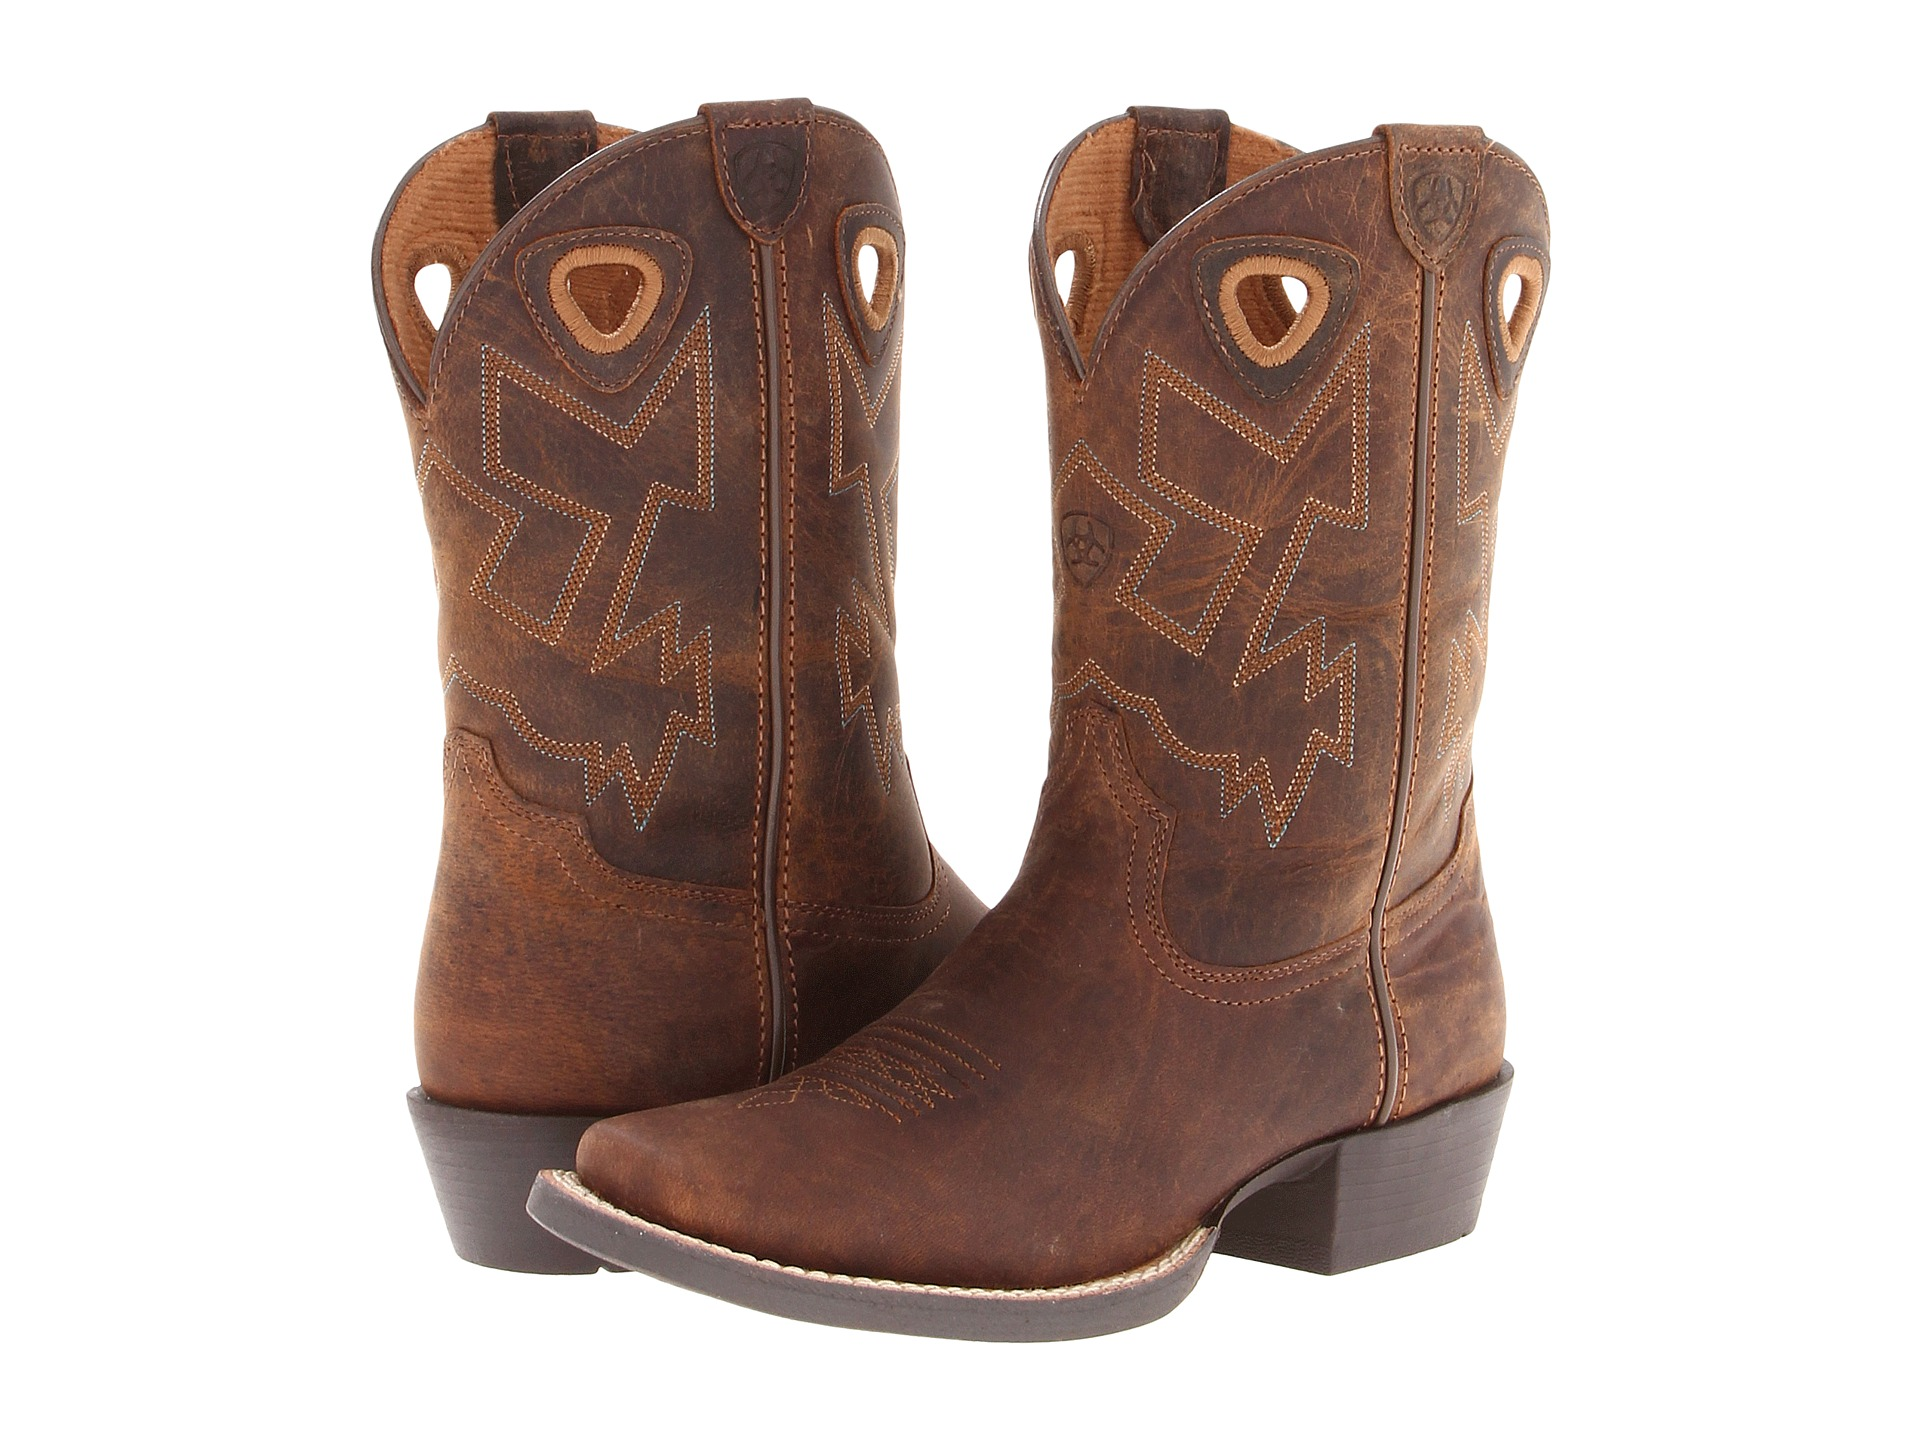 Boots, Cowboy Boots, Girls | Shipped Free at Zappos